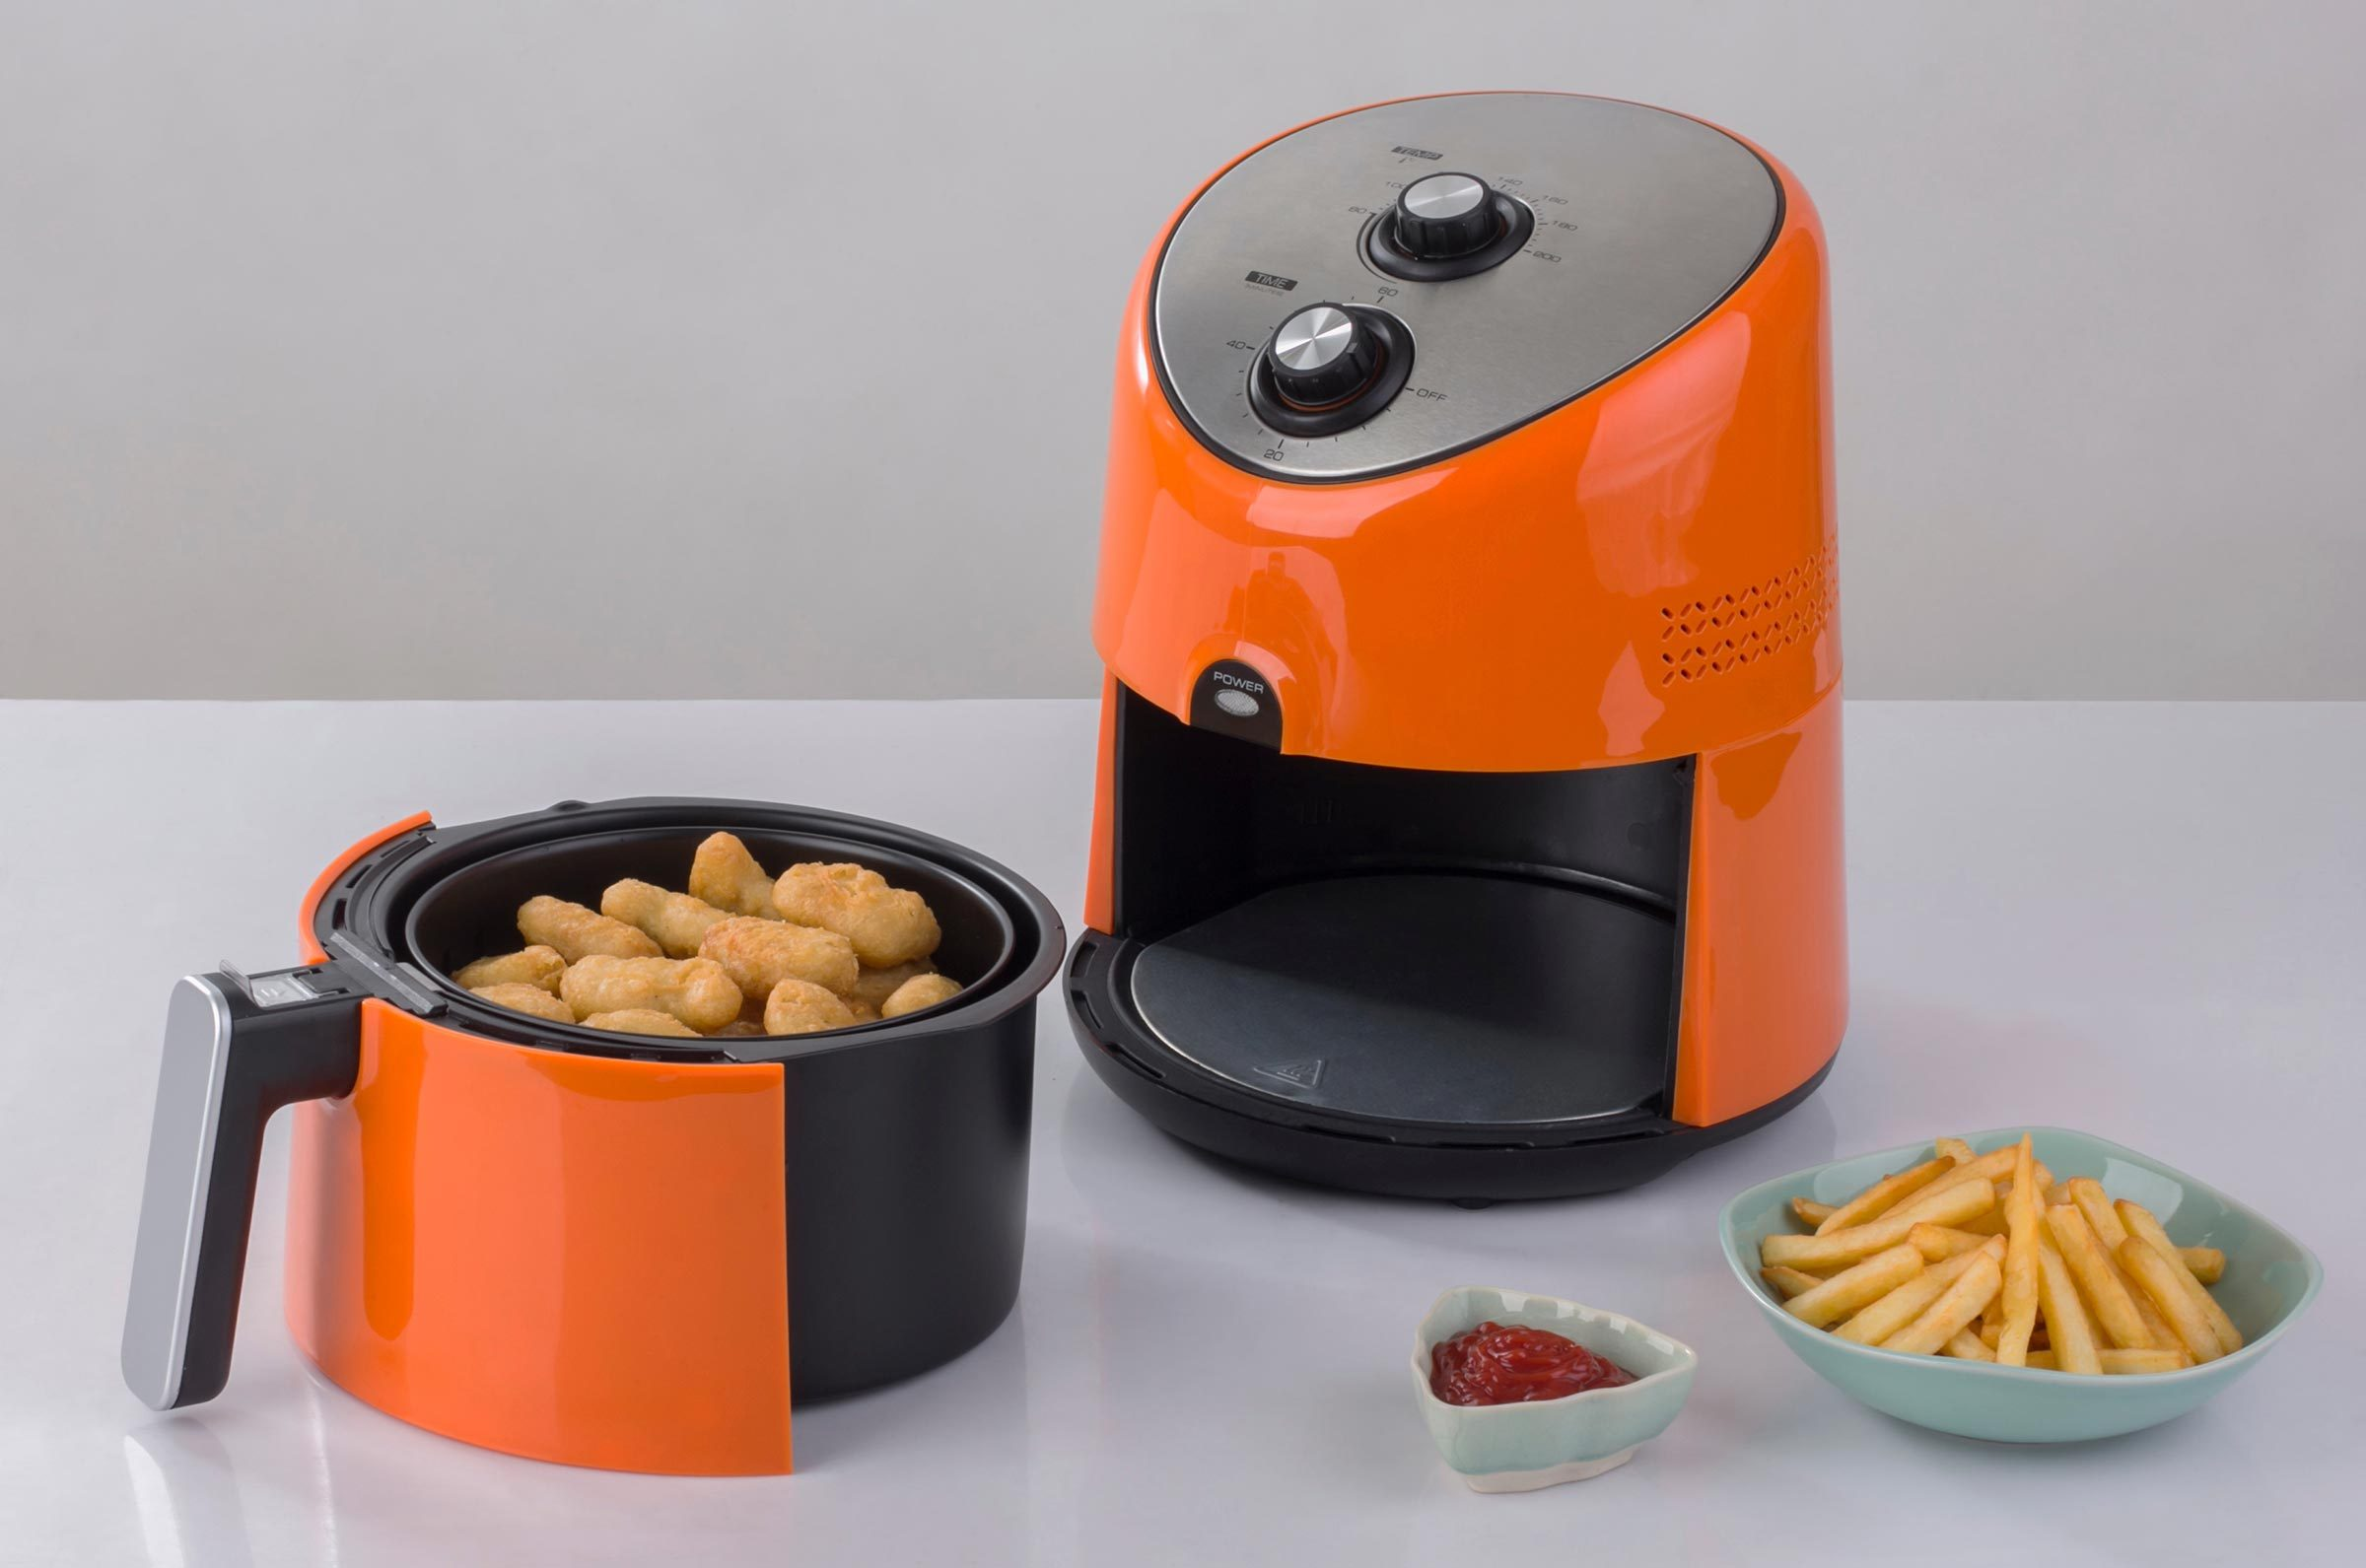 11 Mistakes Almost Everyone Makes with Their Air Fryer